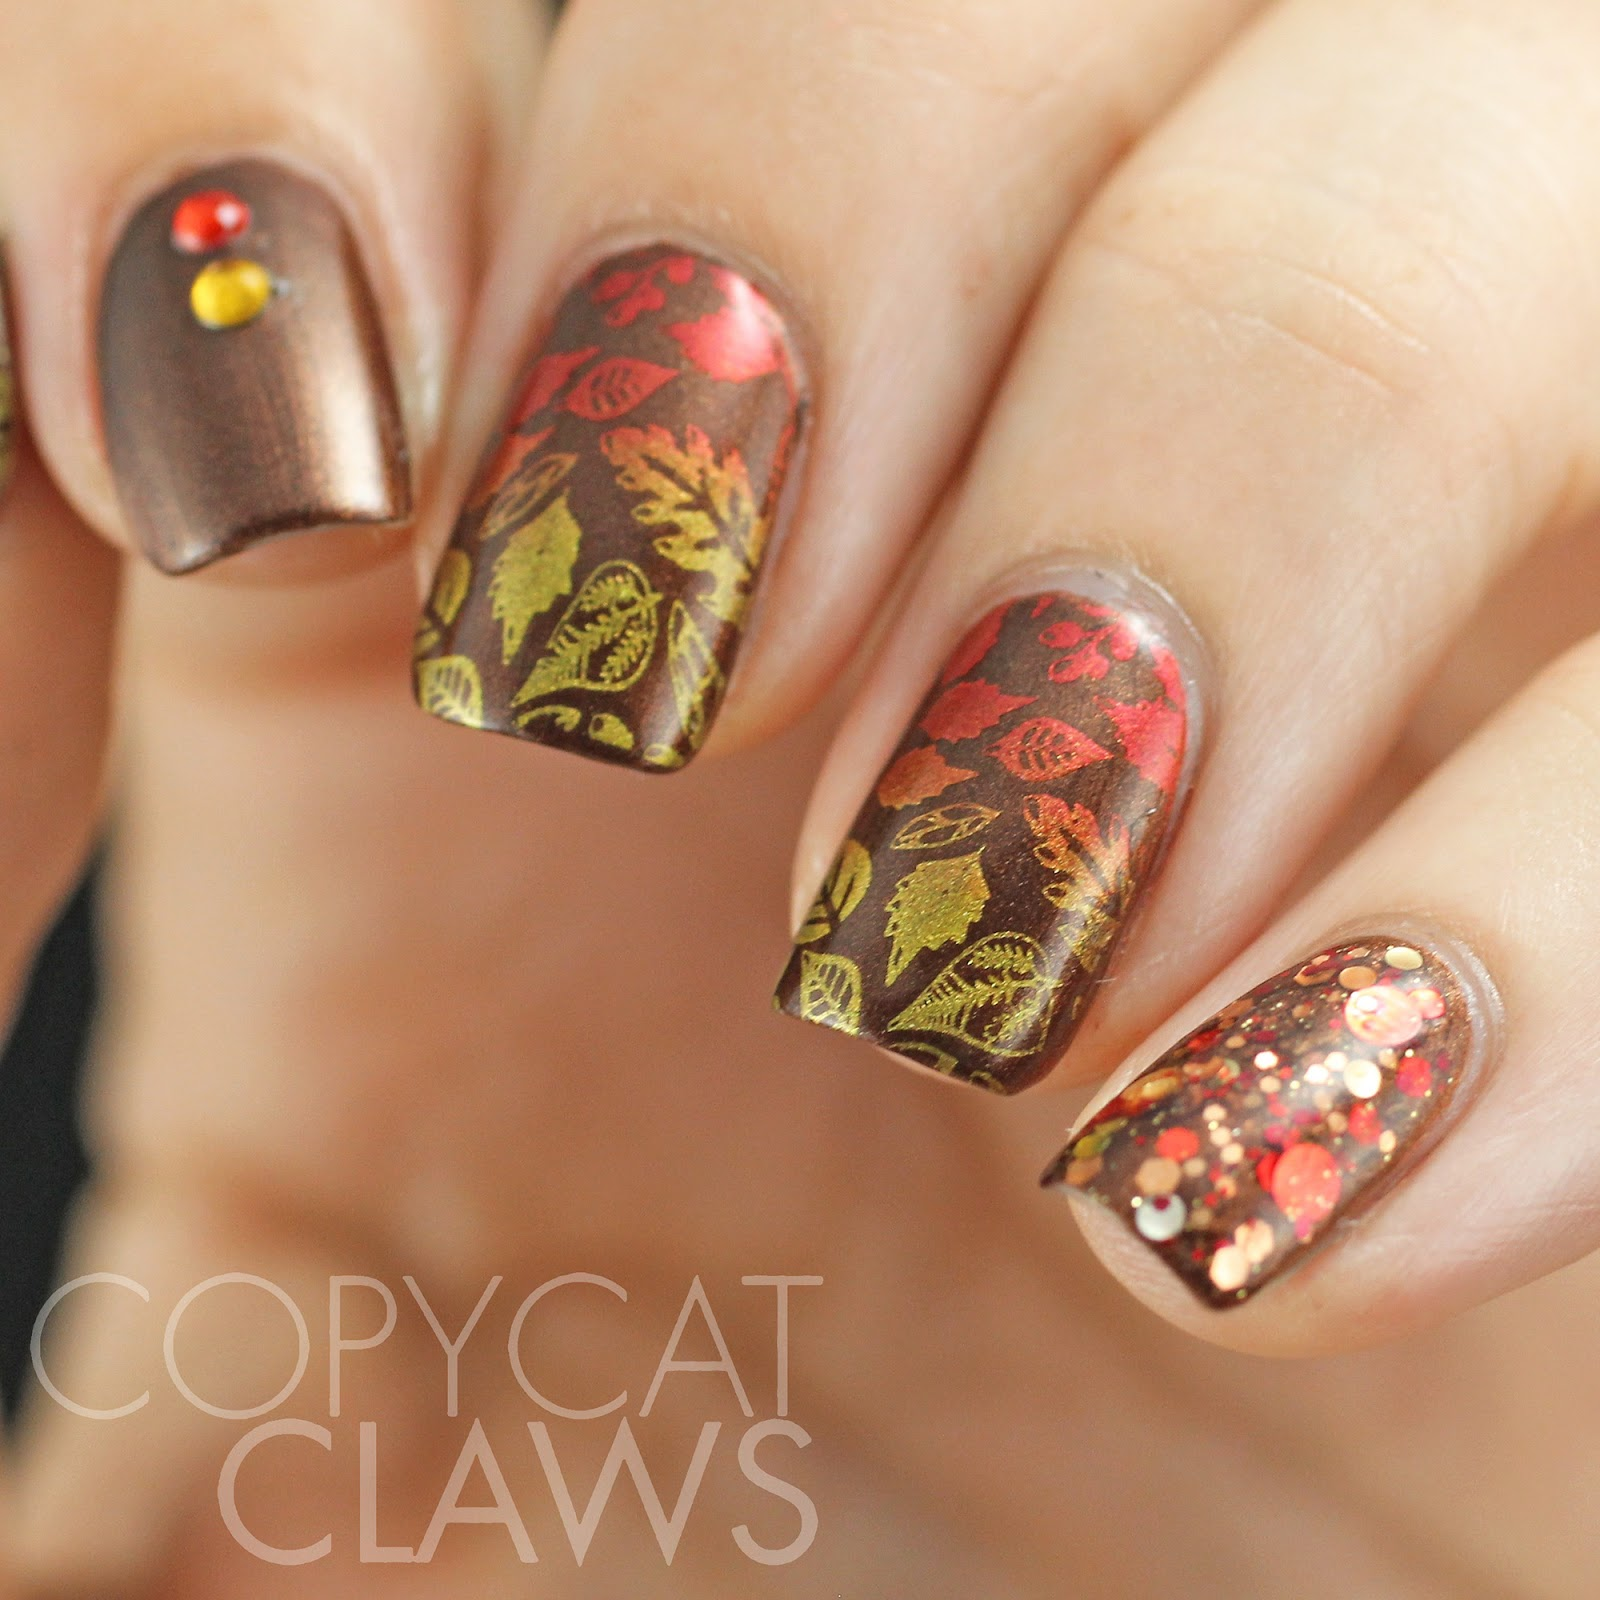 Last Autumn Nail Art Of The Year: Copycat Claws: Sunday Stamping